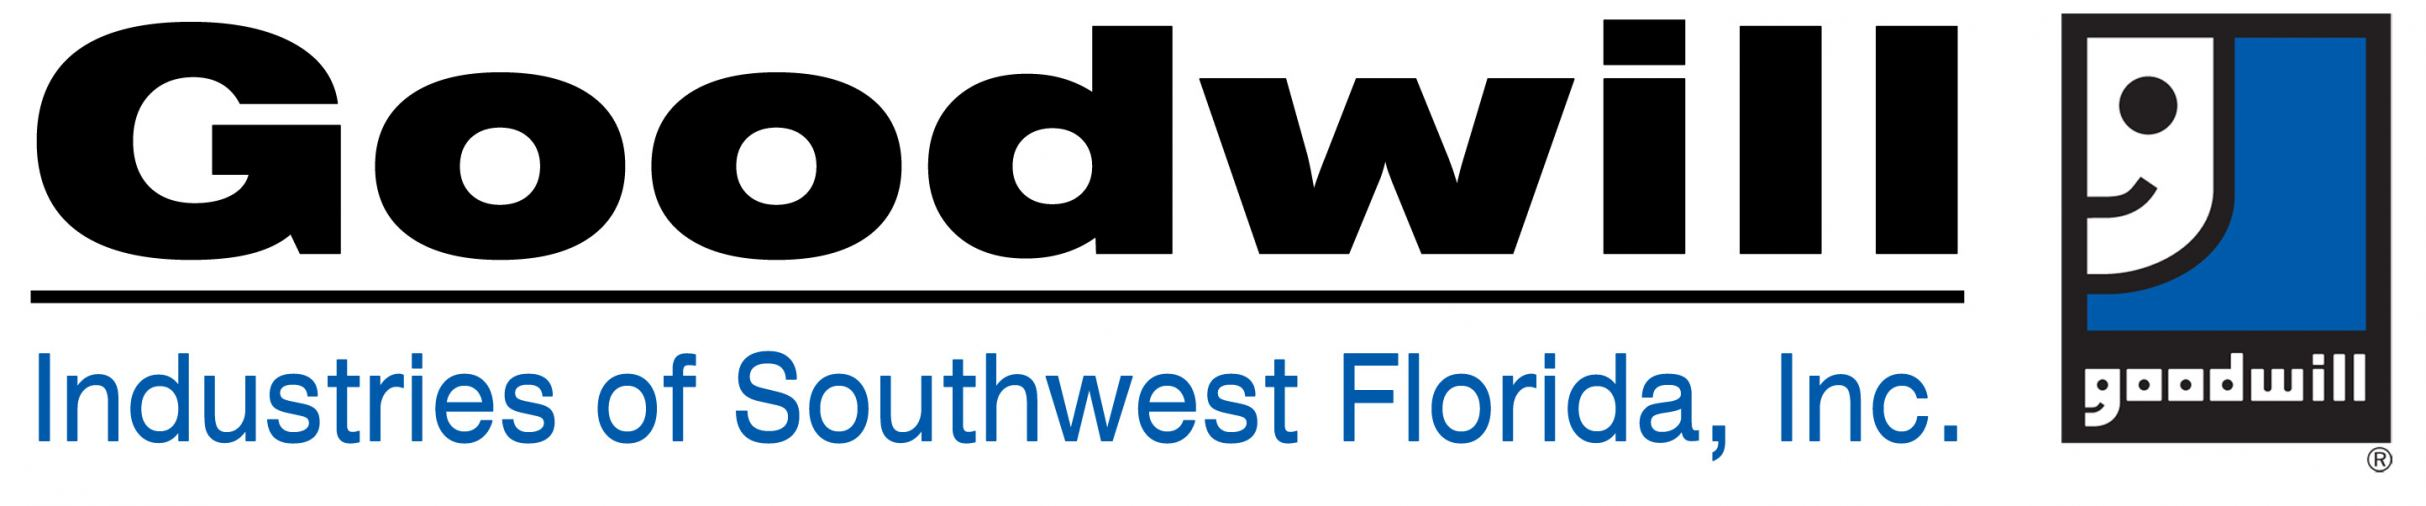 Goodwill Industries of Southwest Florida Logo